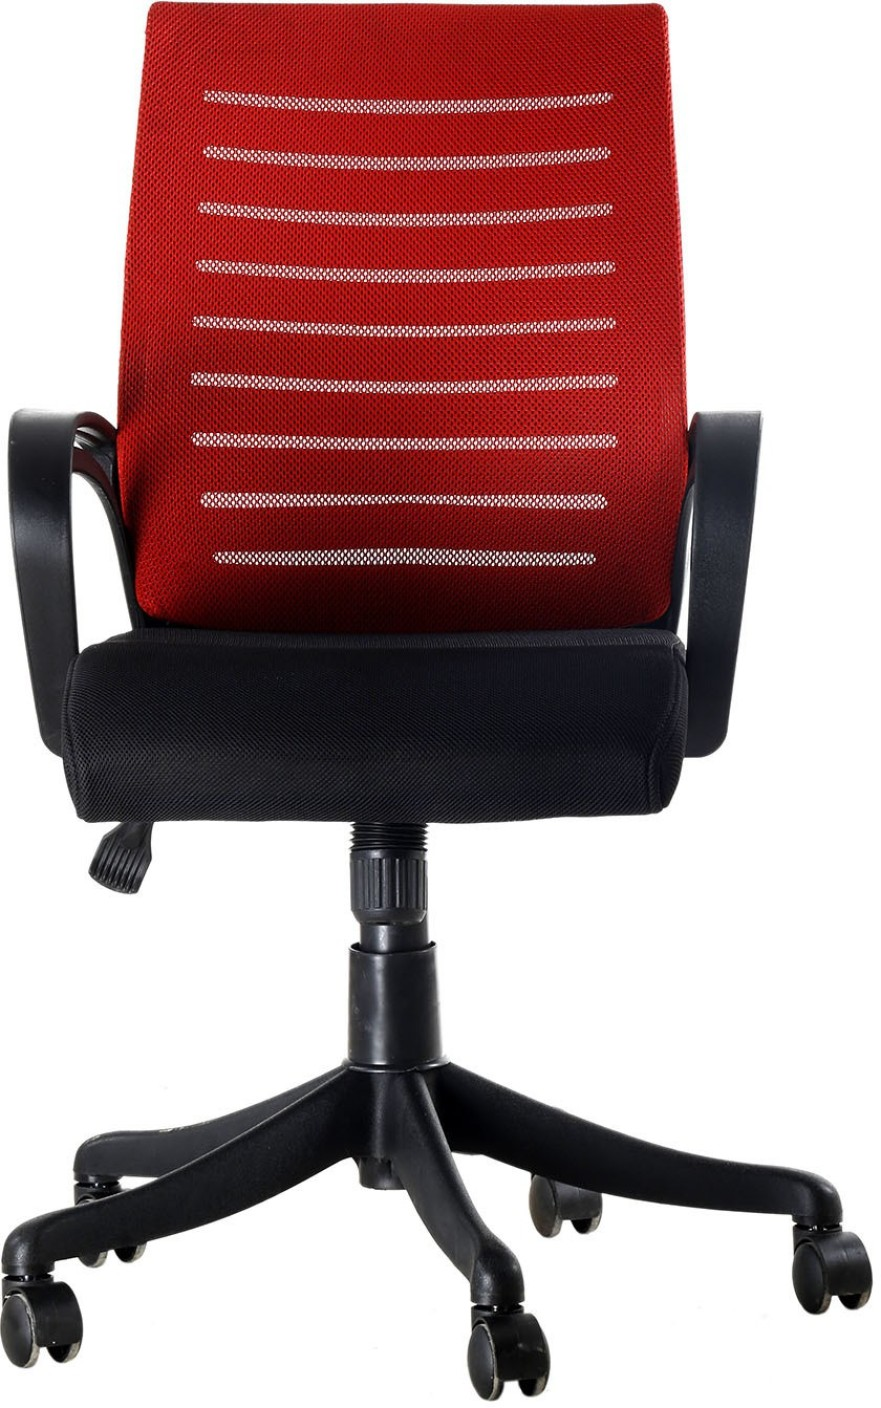 Regentseating Fabric Office Arm Chair Price in India - Buy ...